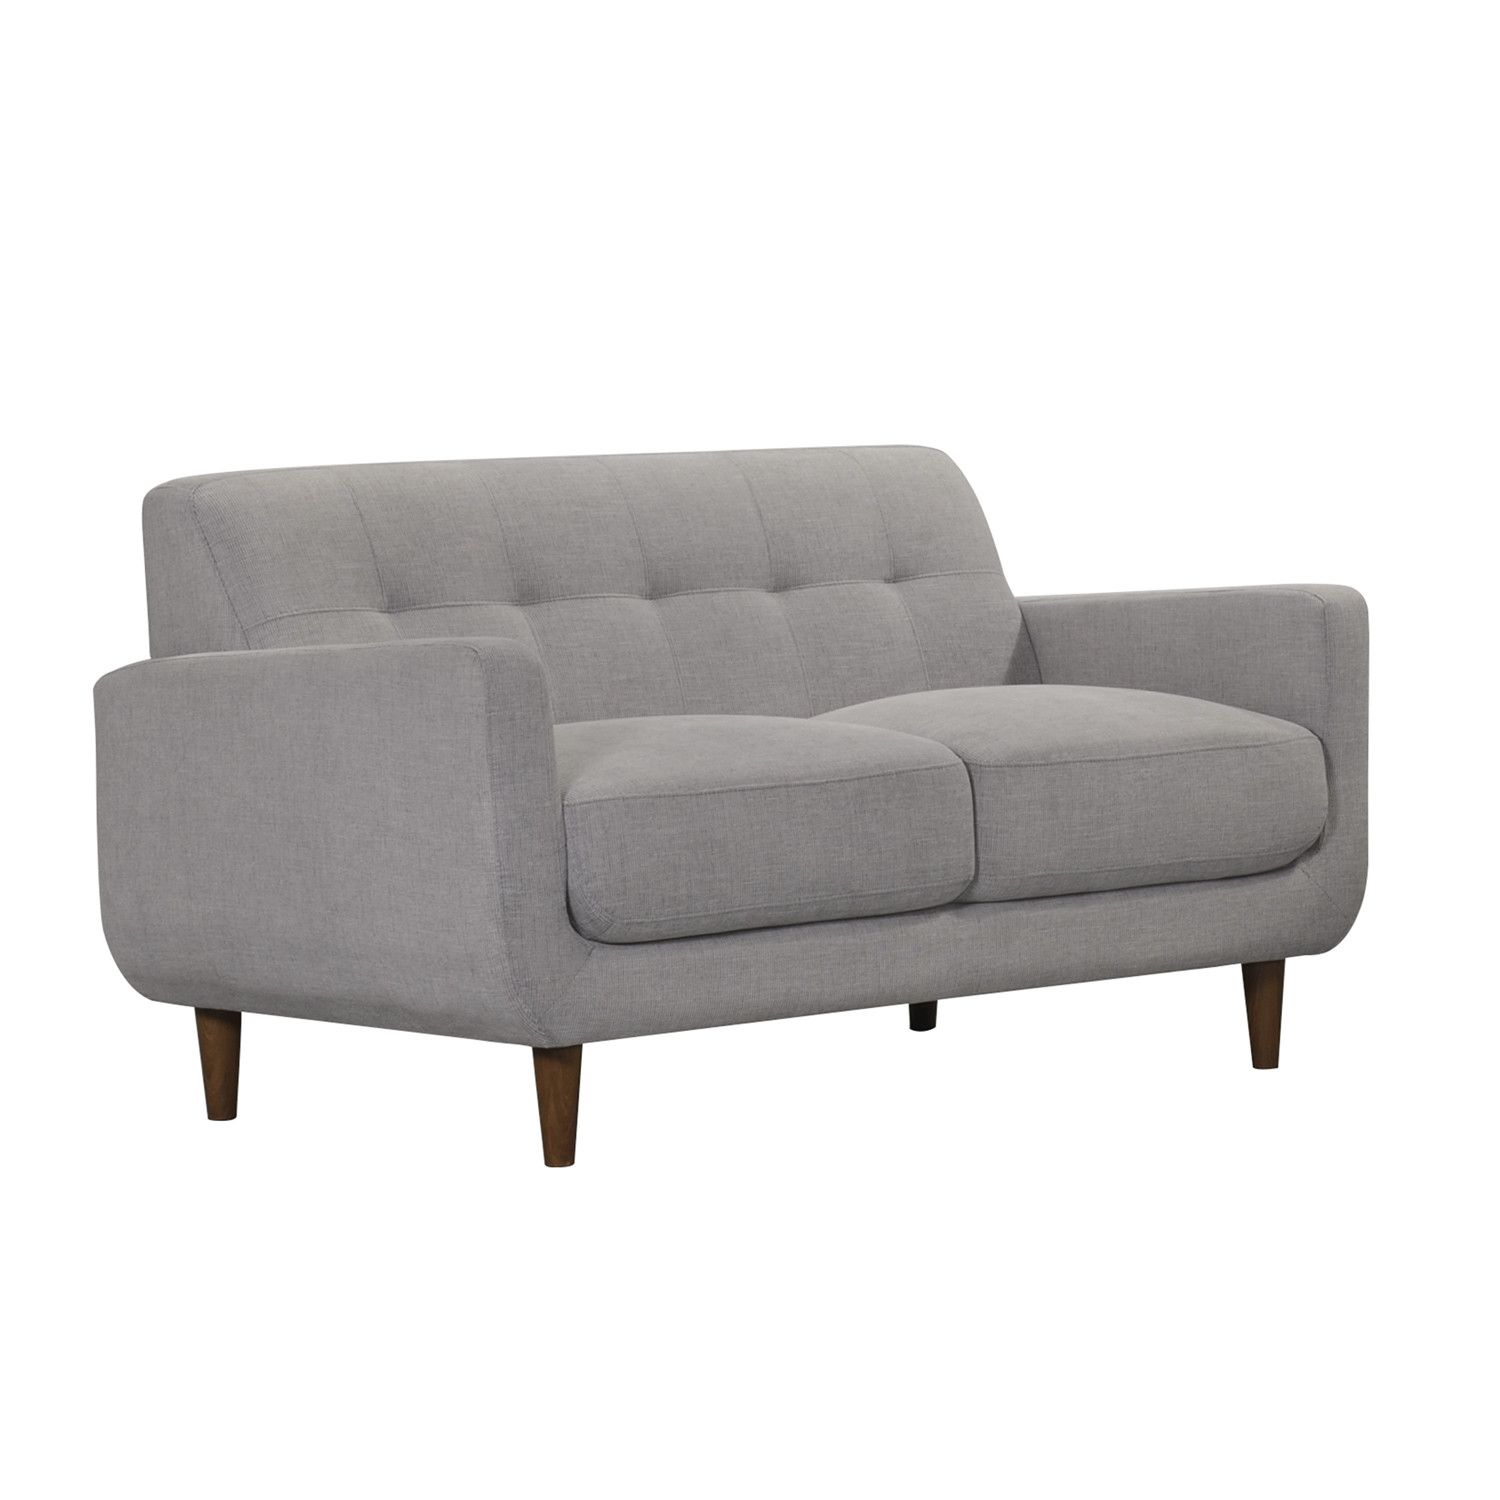 Lana Two Seater Sofa | hoose in 2019 | Sofa, Furniture, 2 ...